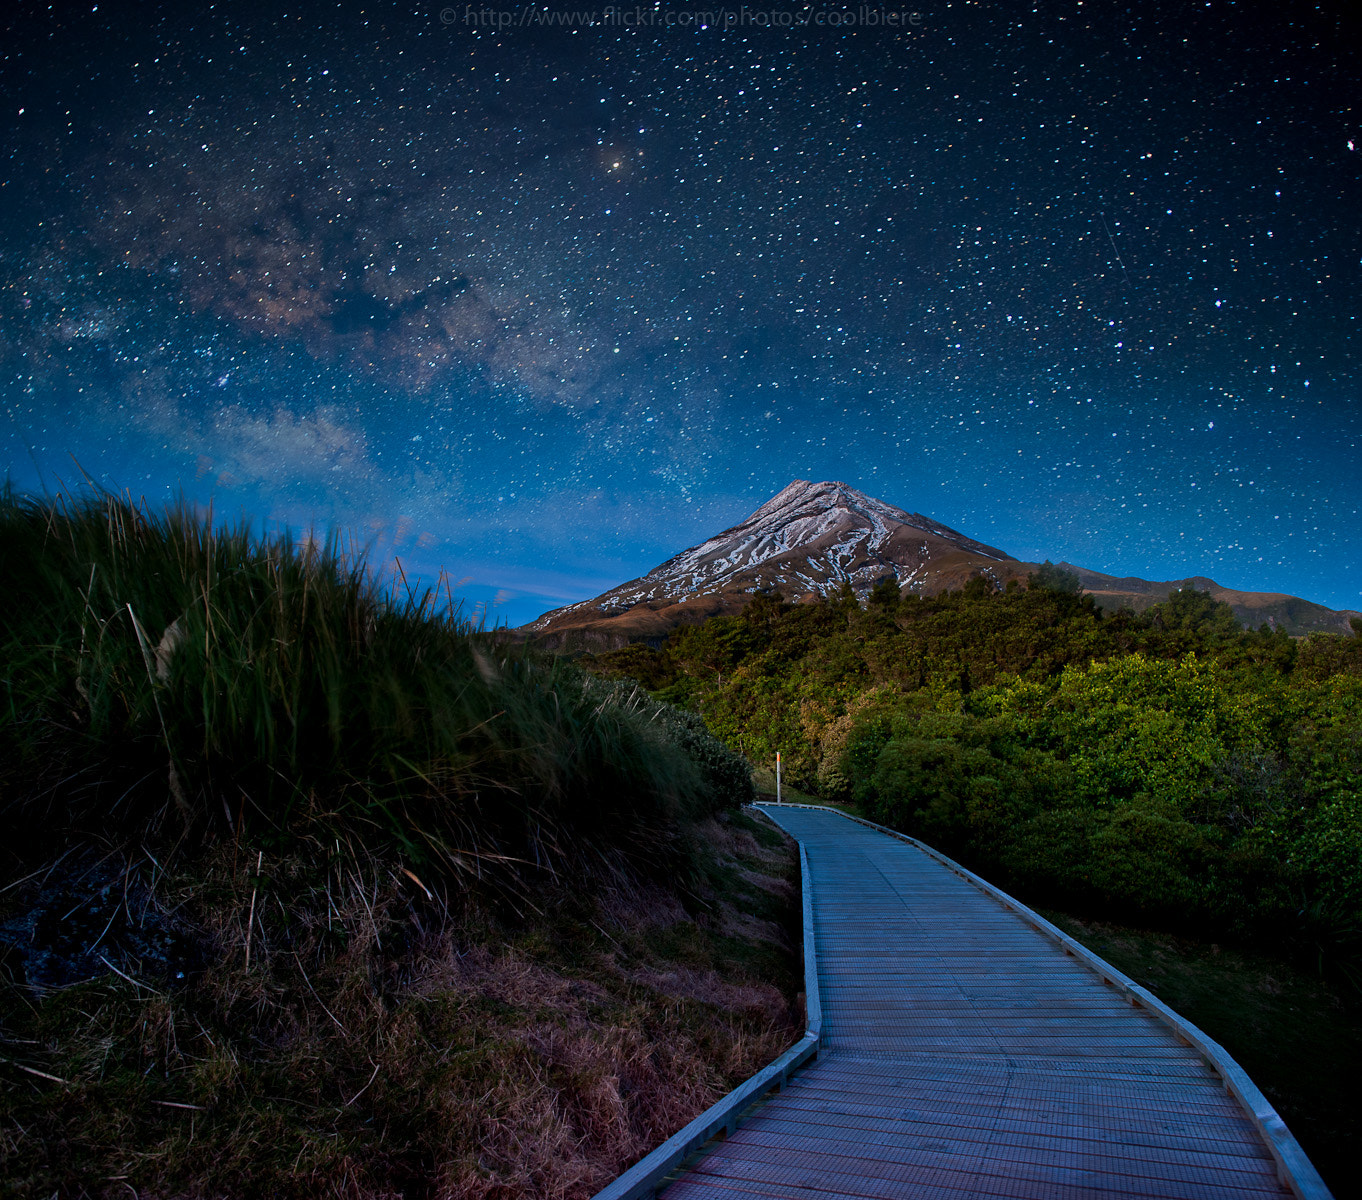 Photograph Mt. Ekmont at night by Coolbiere. A. on 500px